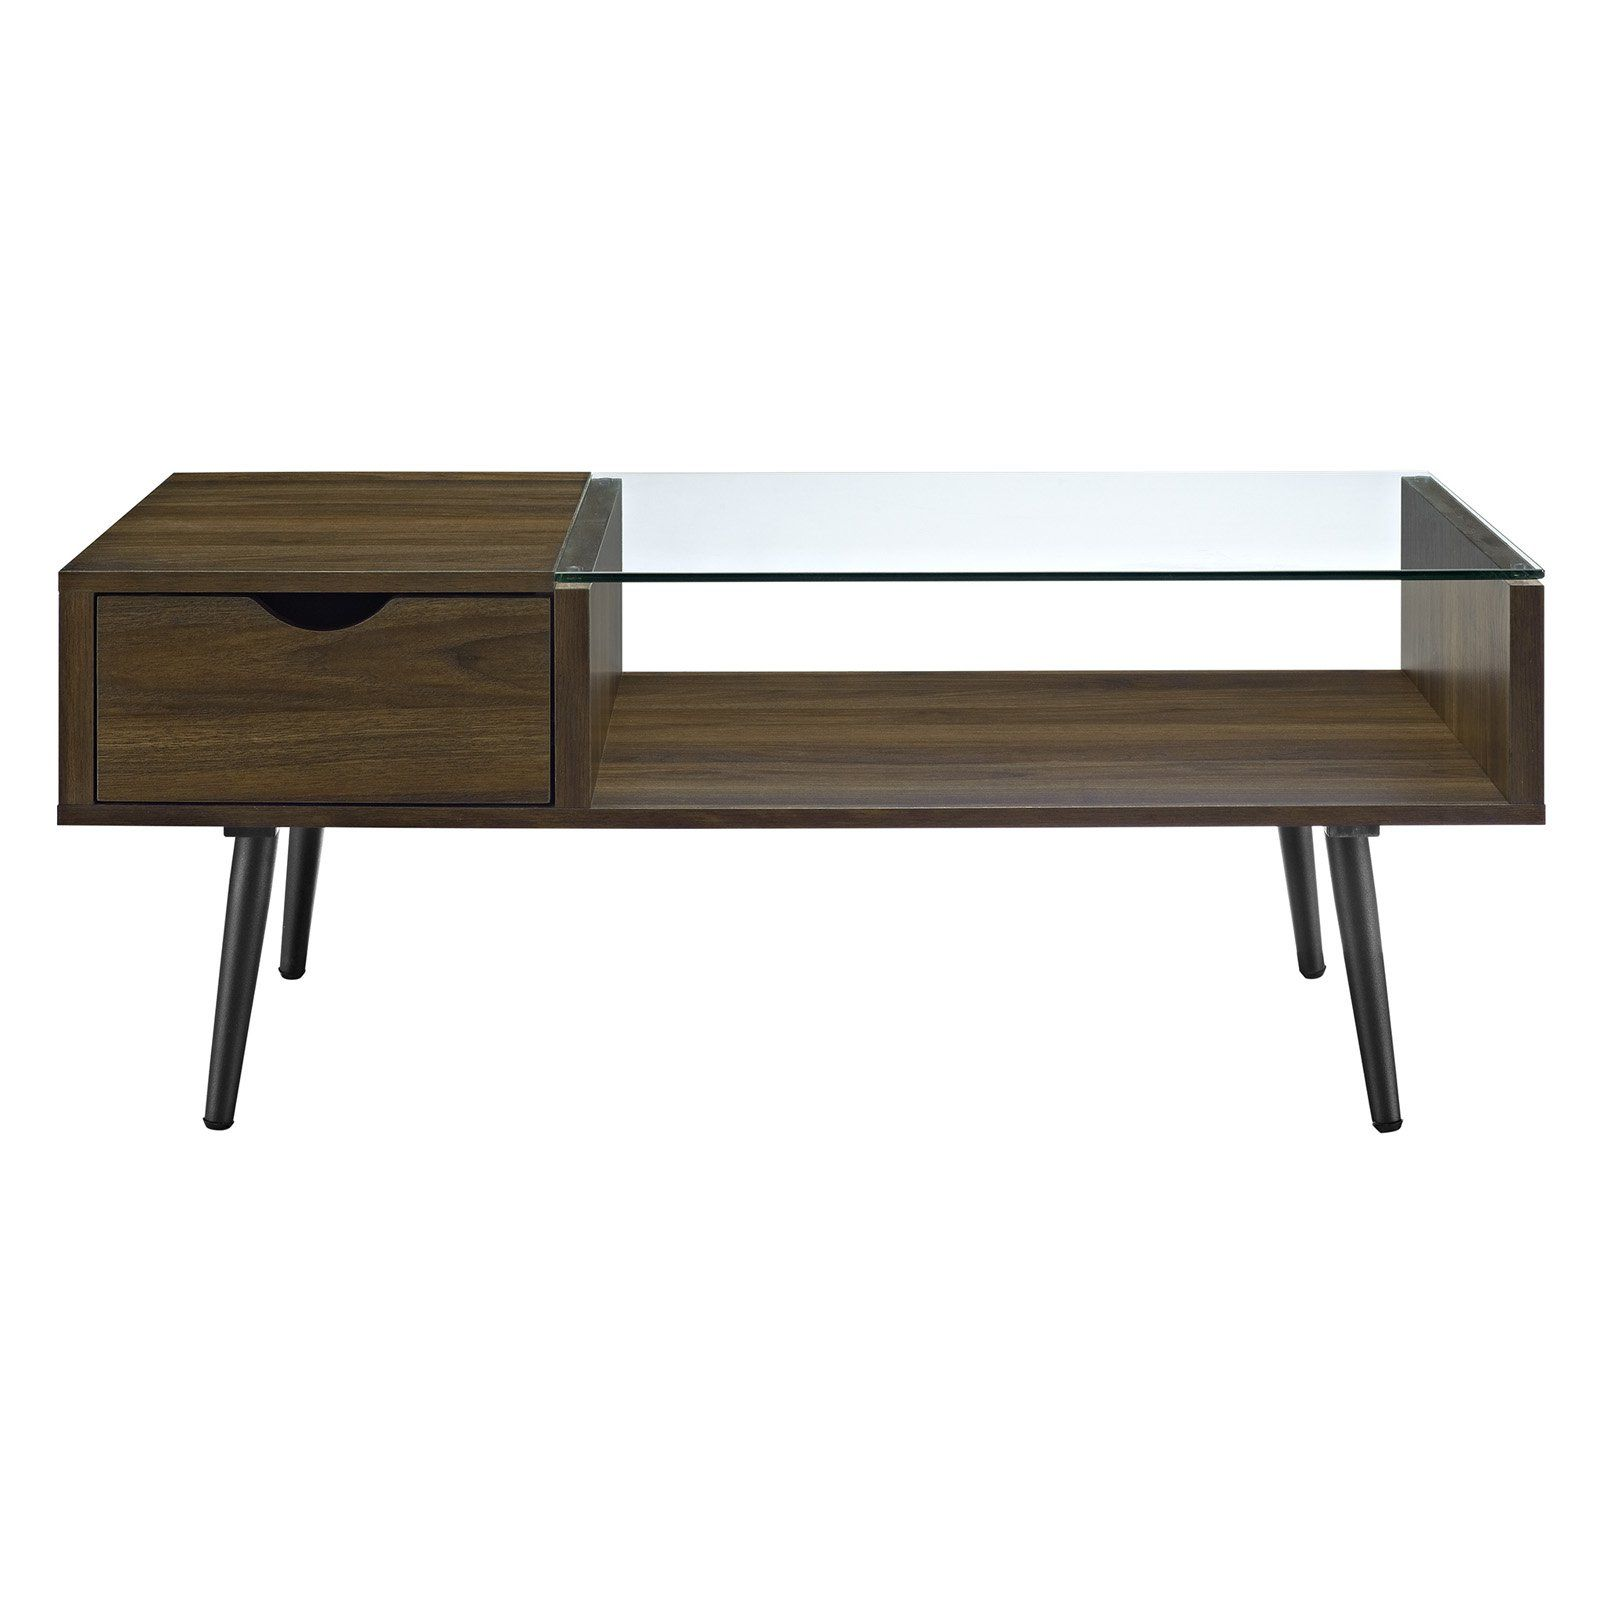 Manor Park Wood And Glass Coffee Table In 2021 Coffee Table Faux Marble Coffee Table Modern Wood Coffee Table [ 1600 x 1600 Pixel ]